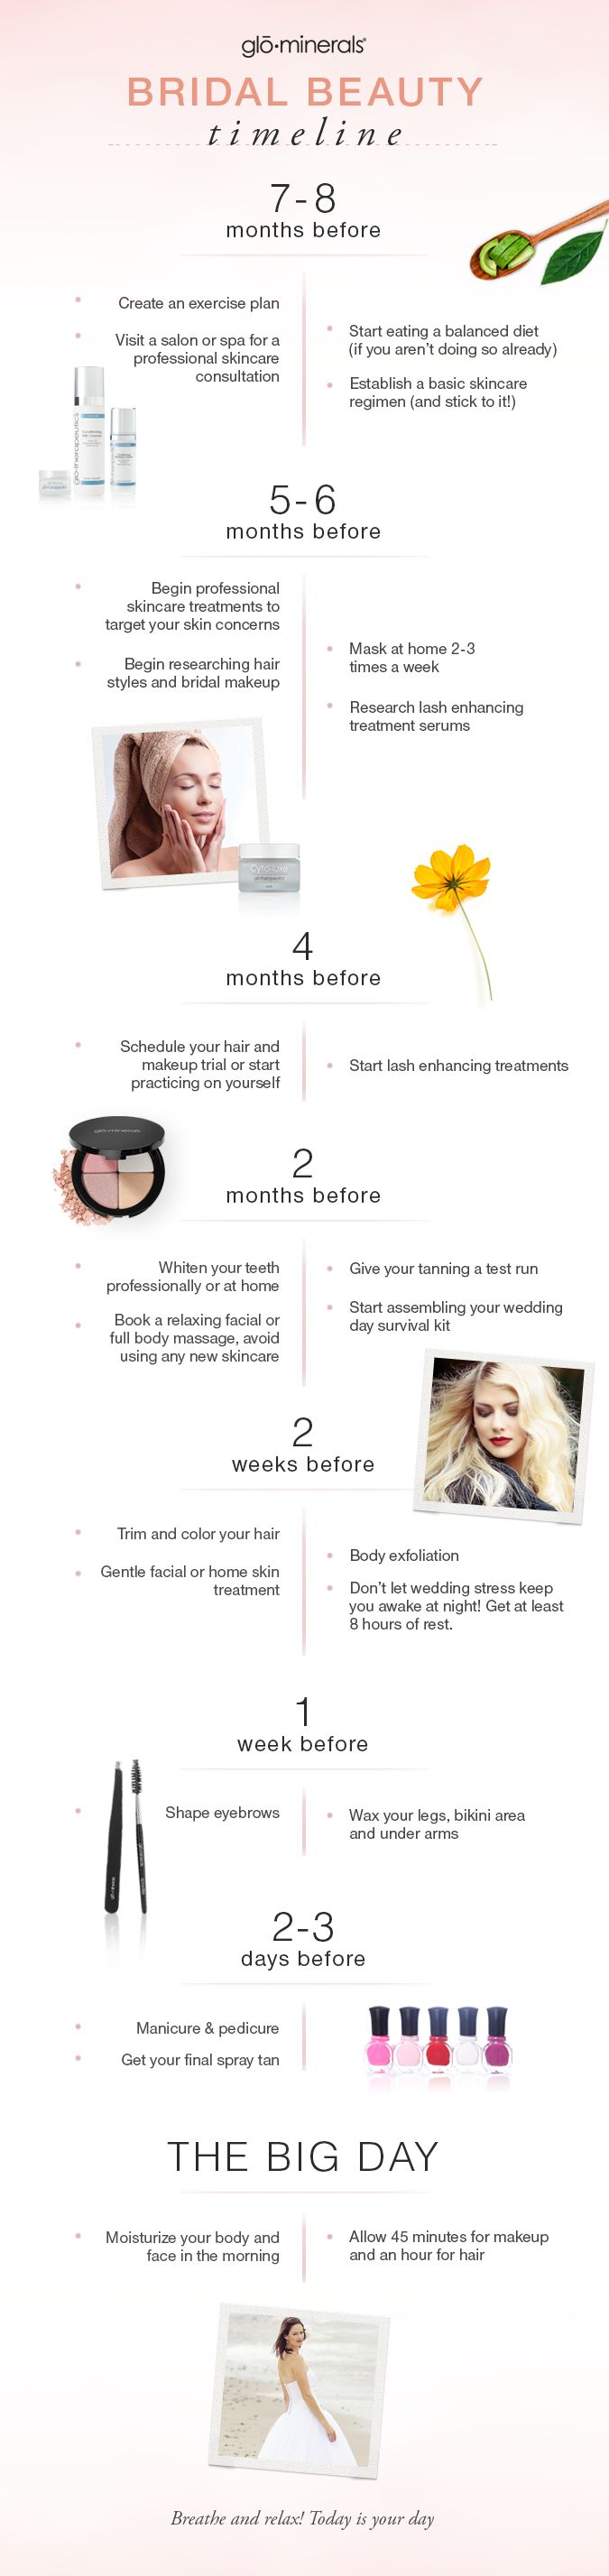 Infographic with all the steps you need to acheive that perfect bridal glo on your wedding day! #bridalglo #weddingmakeup #bridetobe